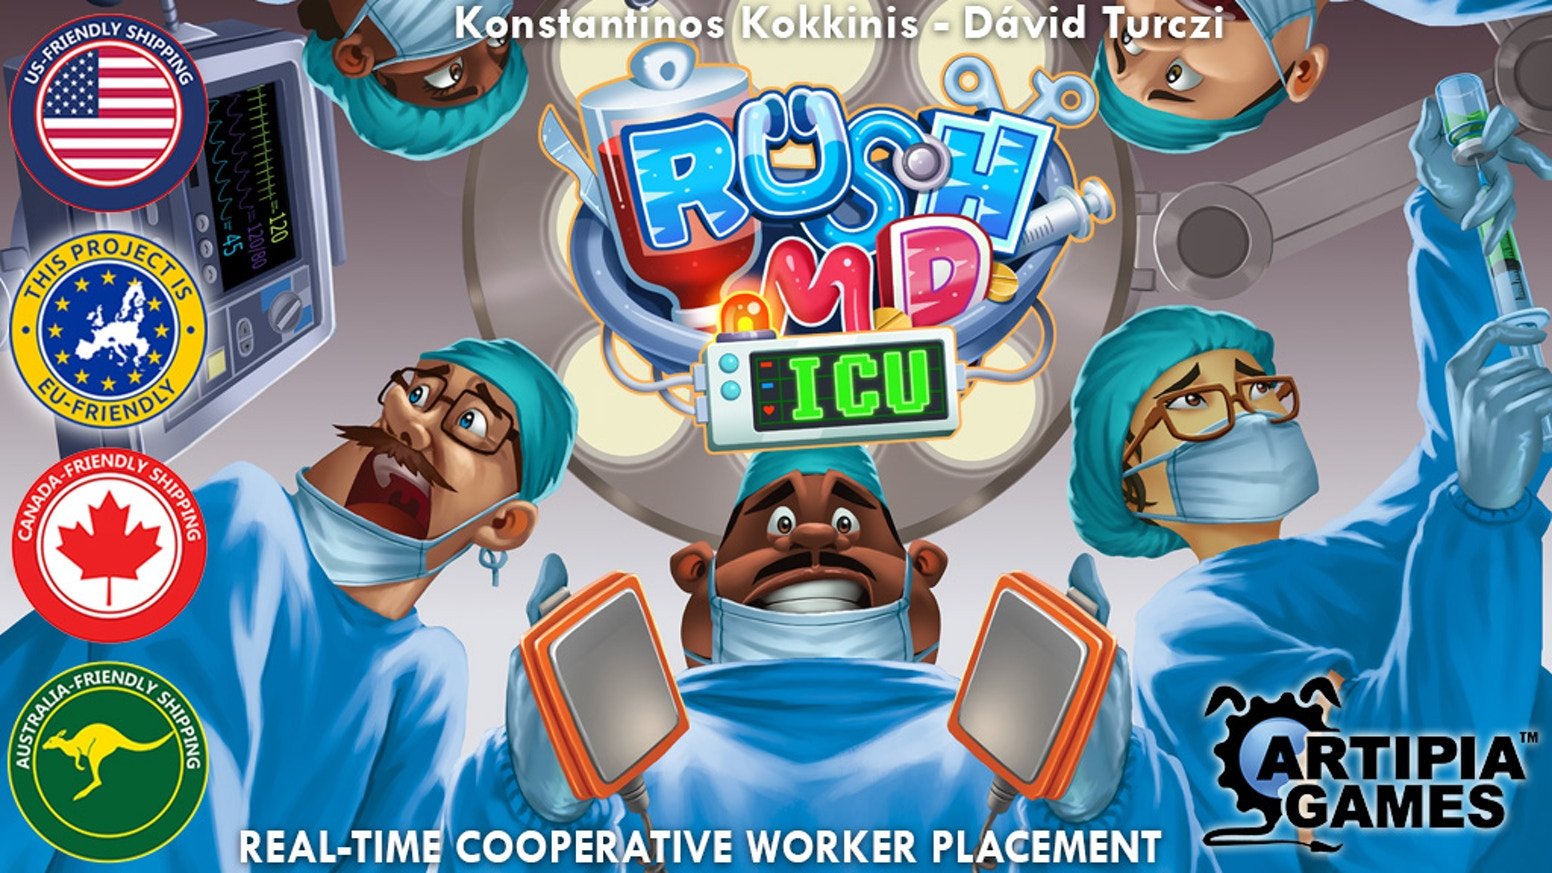 Rush M.D. - ICU Expansion